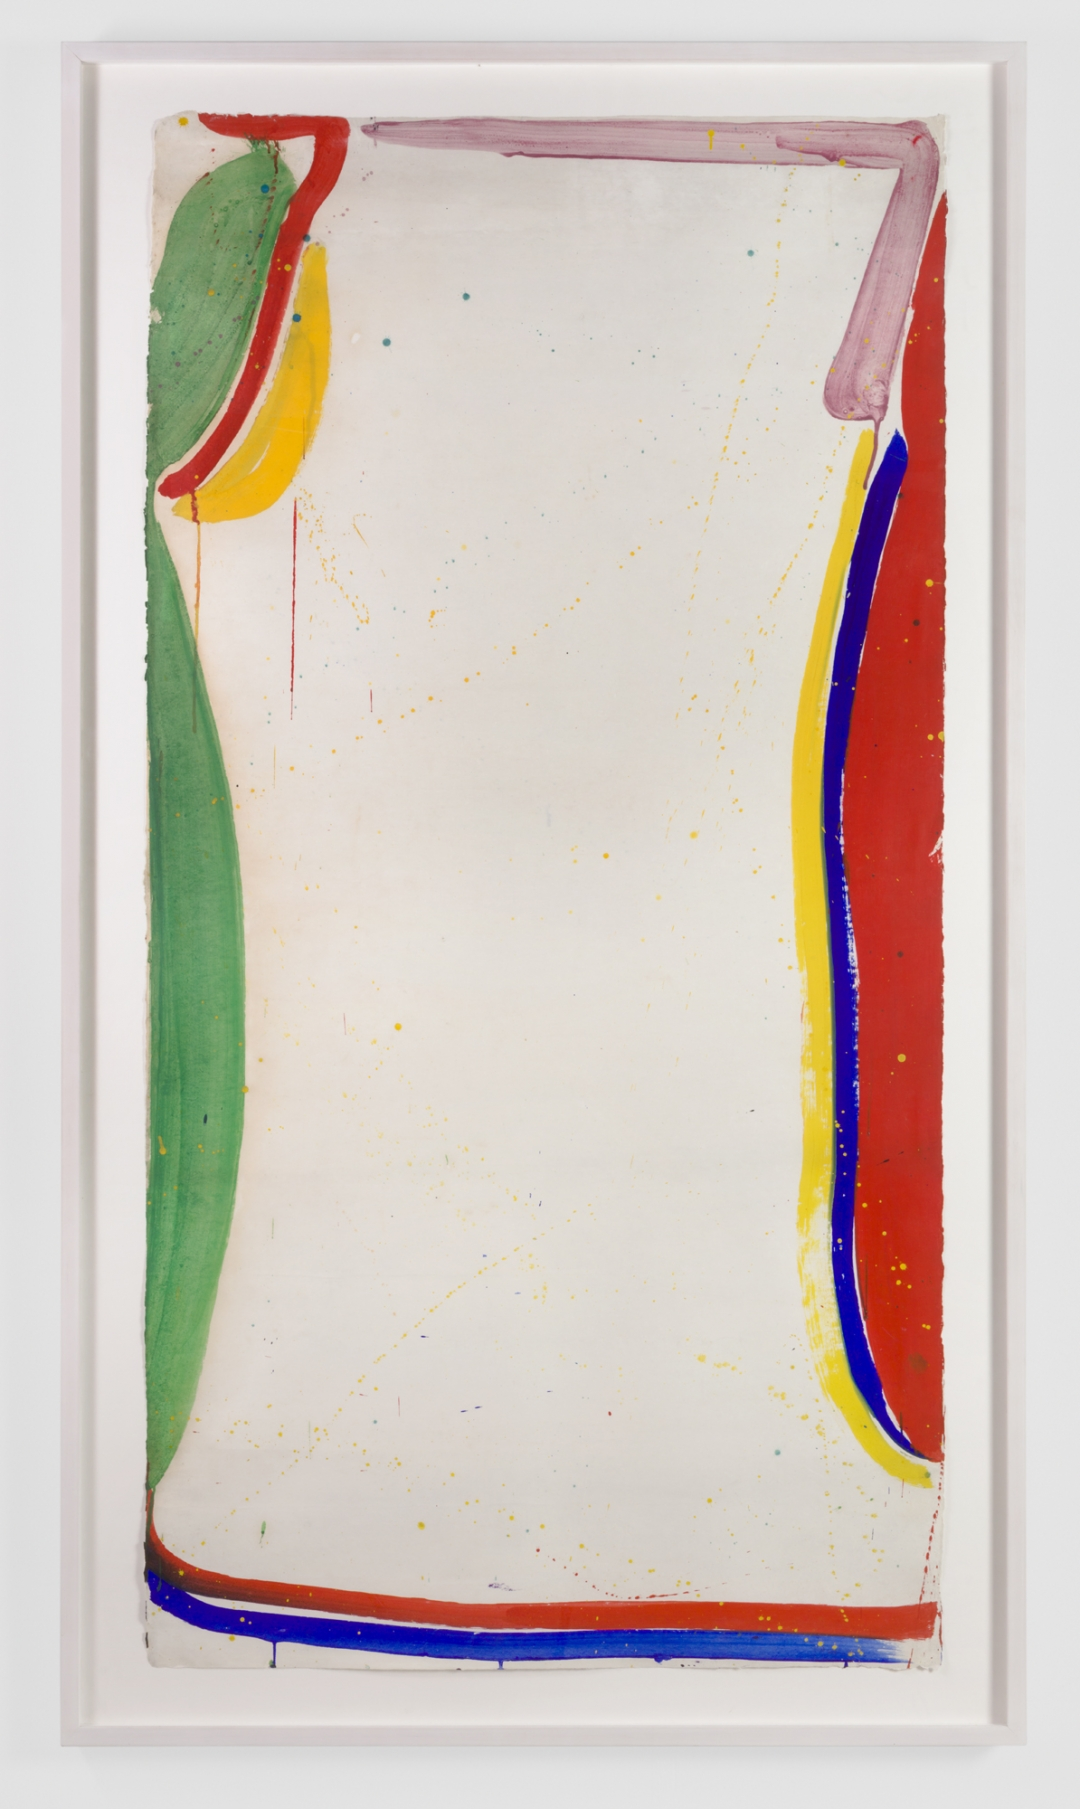 Sam Francis, <i>Untitled</i>, 1965, Gouache on Paper, 71 3/4h x 36 3/4w in / 182.2h x 93.3w cm